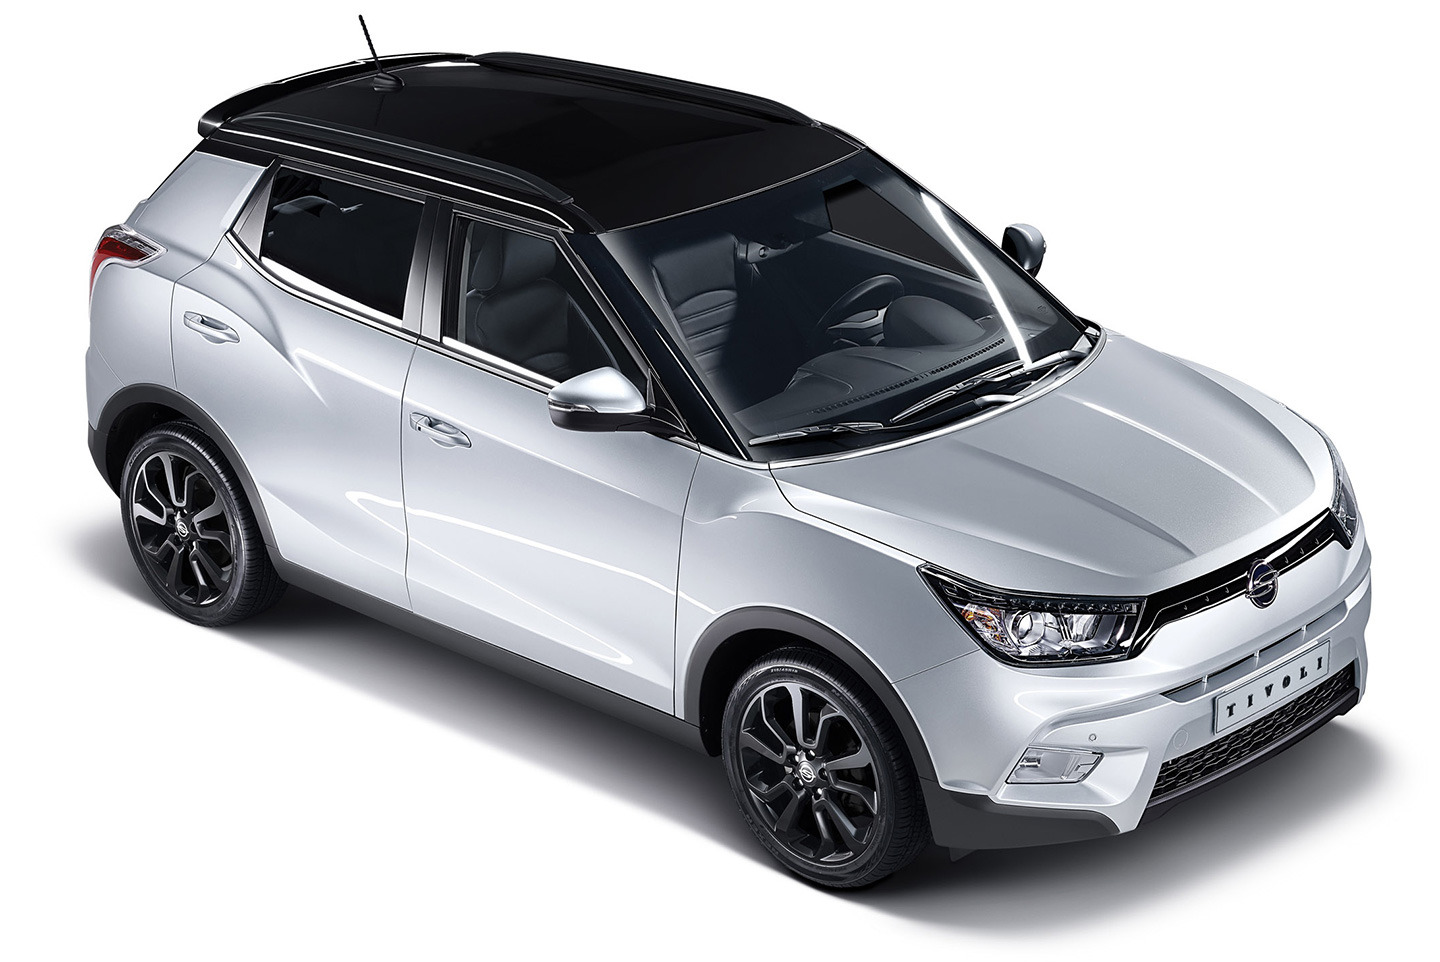 The Motoring World: The All-New Tivoli from Ssangyong gets it